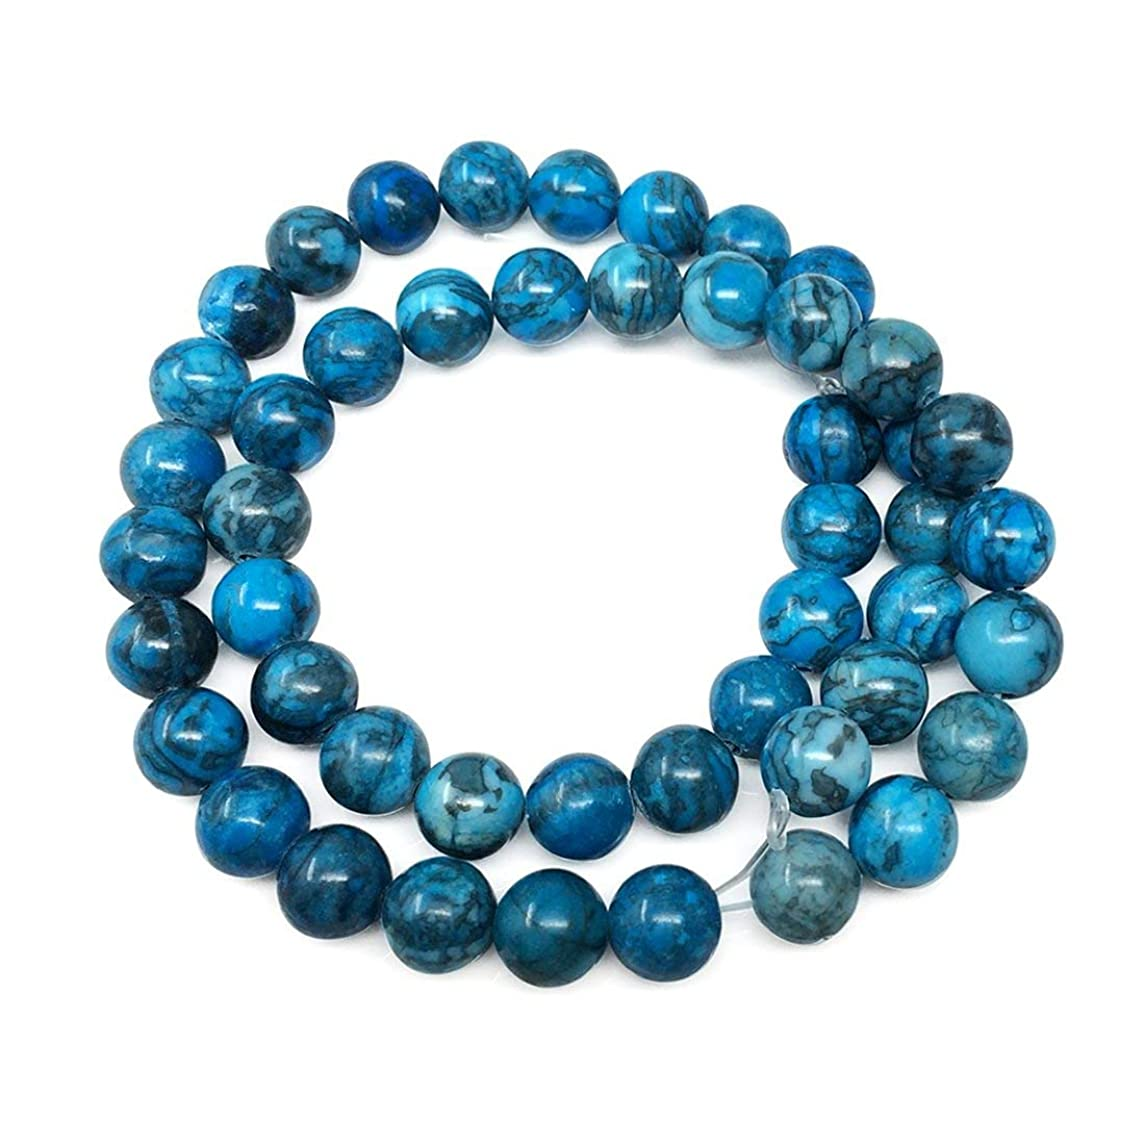 Top Quality Natural Blue Lace Jasper Gemstone 8mm Round Loose Gems Stone Beads 15.5